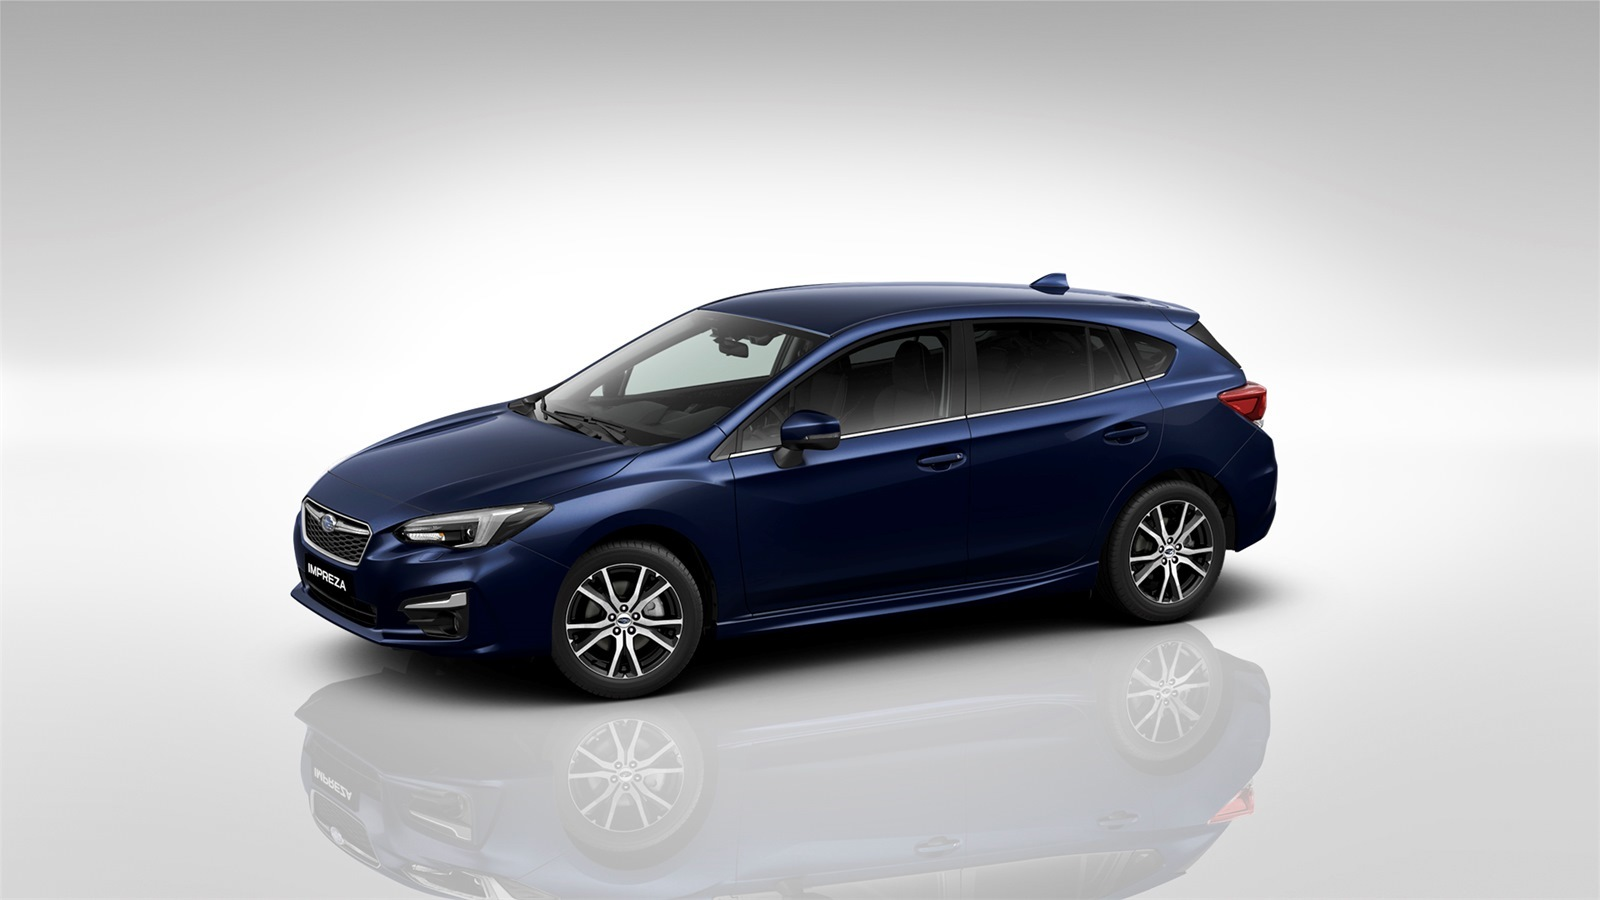 subaru impreza - Available in Dark Blue Pearl